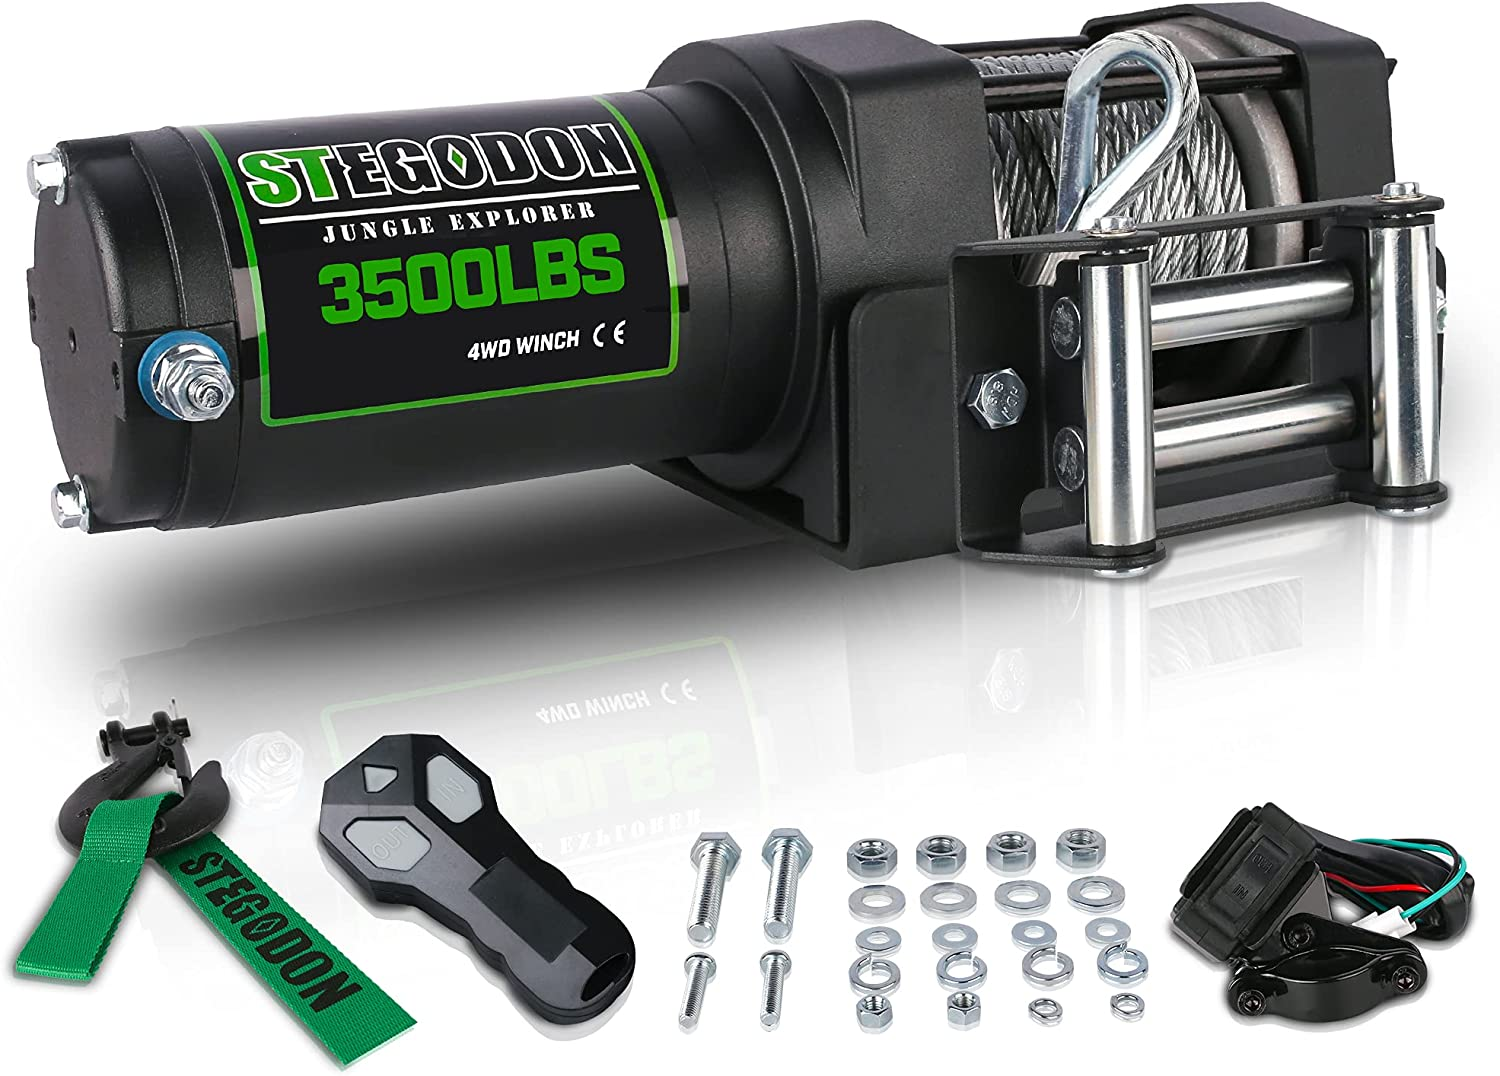 STEGODON New 3500 Limited price sale lb. Load Capacity 12V Electric Steel Cab Inexpensive Winch